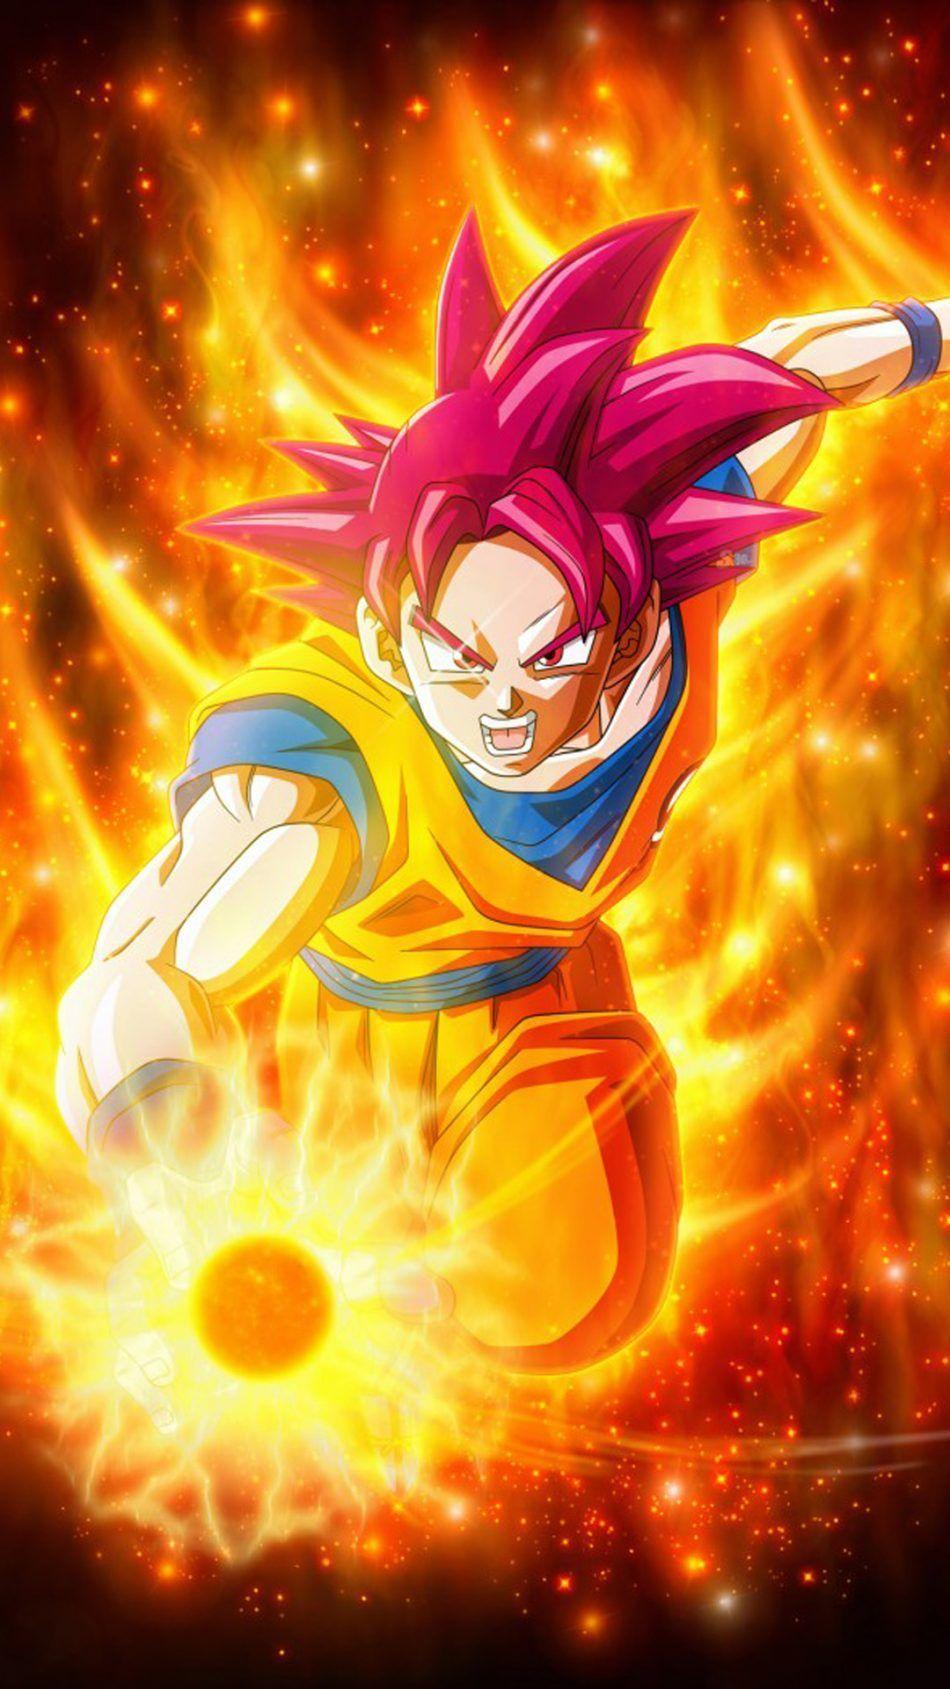 Orange Dragon Ball Android Wallpapers Wallpaper Cave